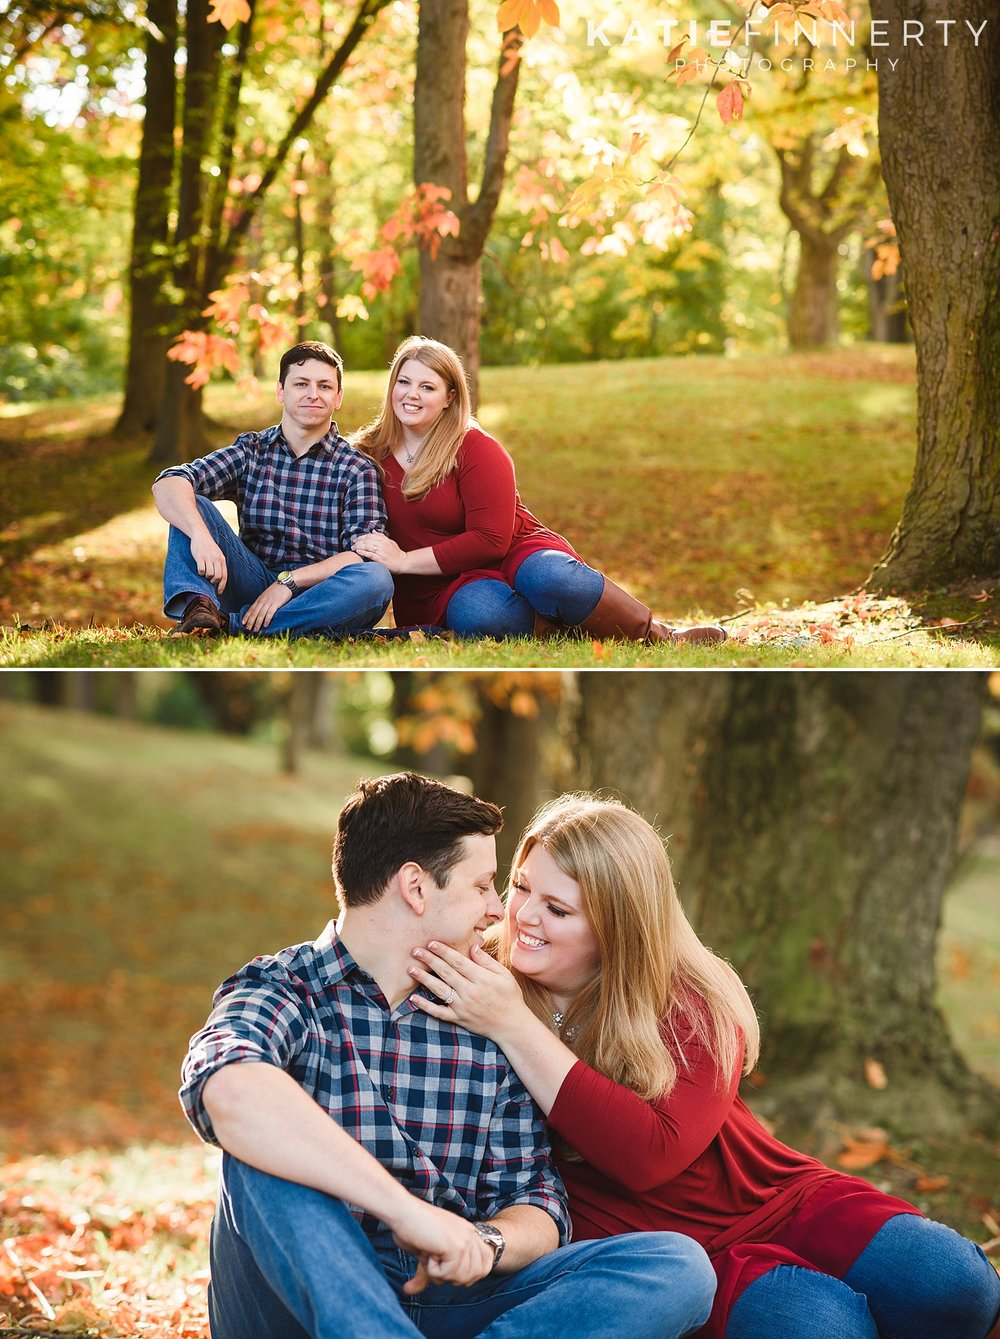 Highland Park Rochester Engagement Photography